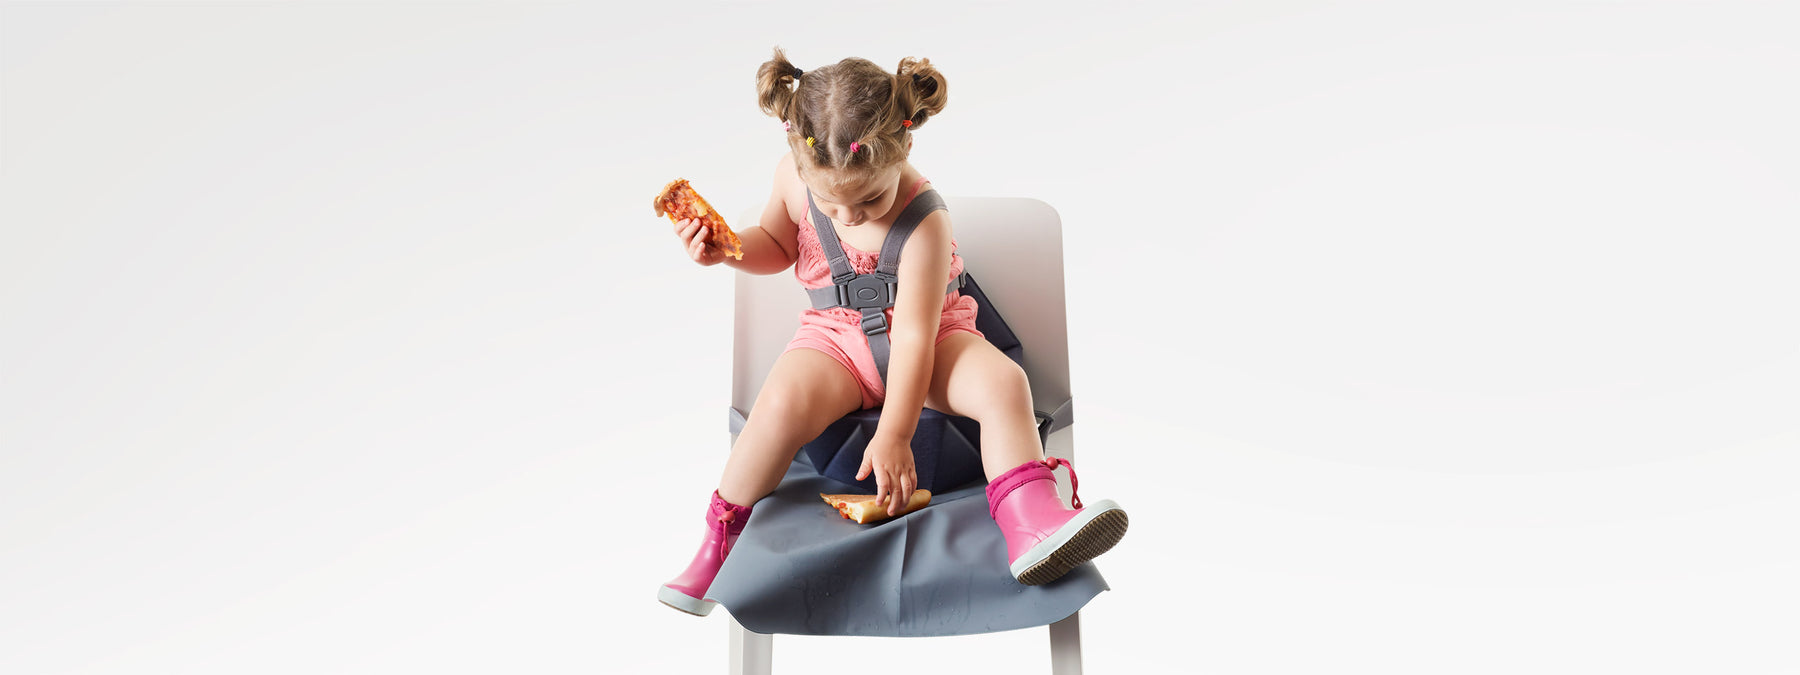 little girl on a baby booster seat with a seat cover eating pizza